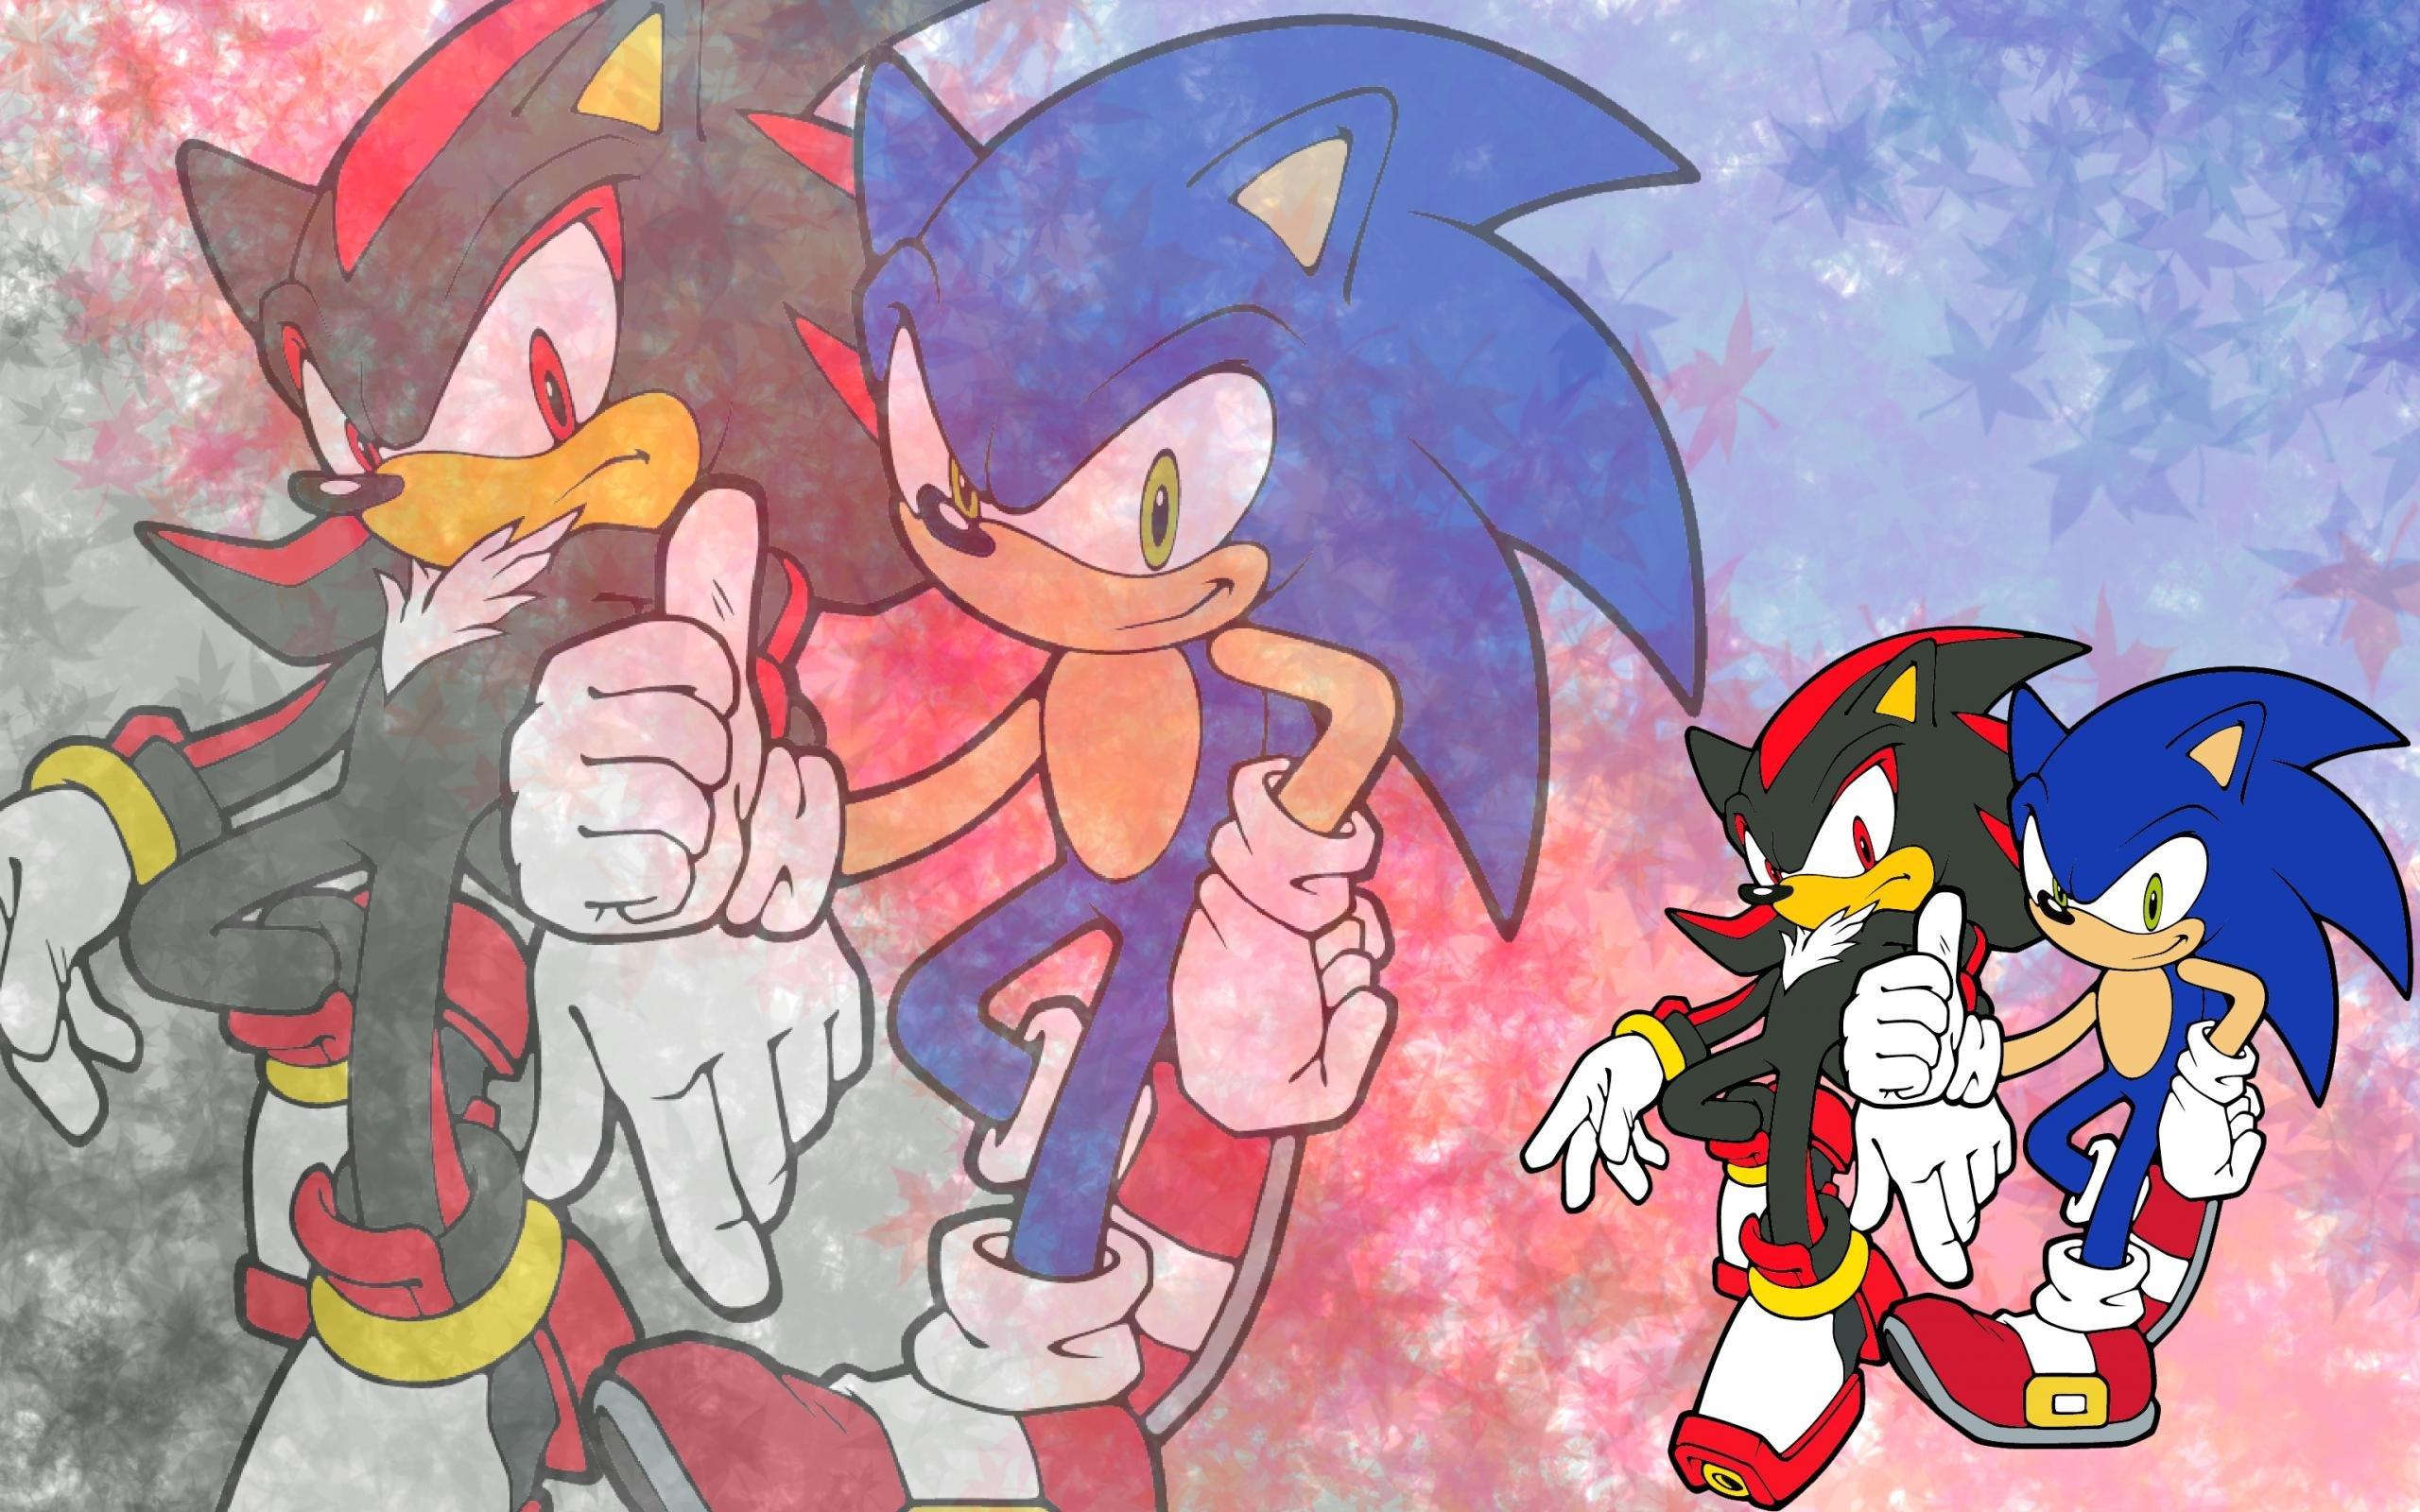 Free Sonic Adventure 2 High Quality Wallpaper ID328295 For Hd 2560x1600 Computer